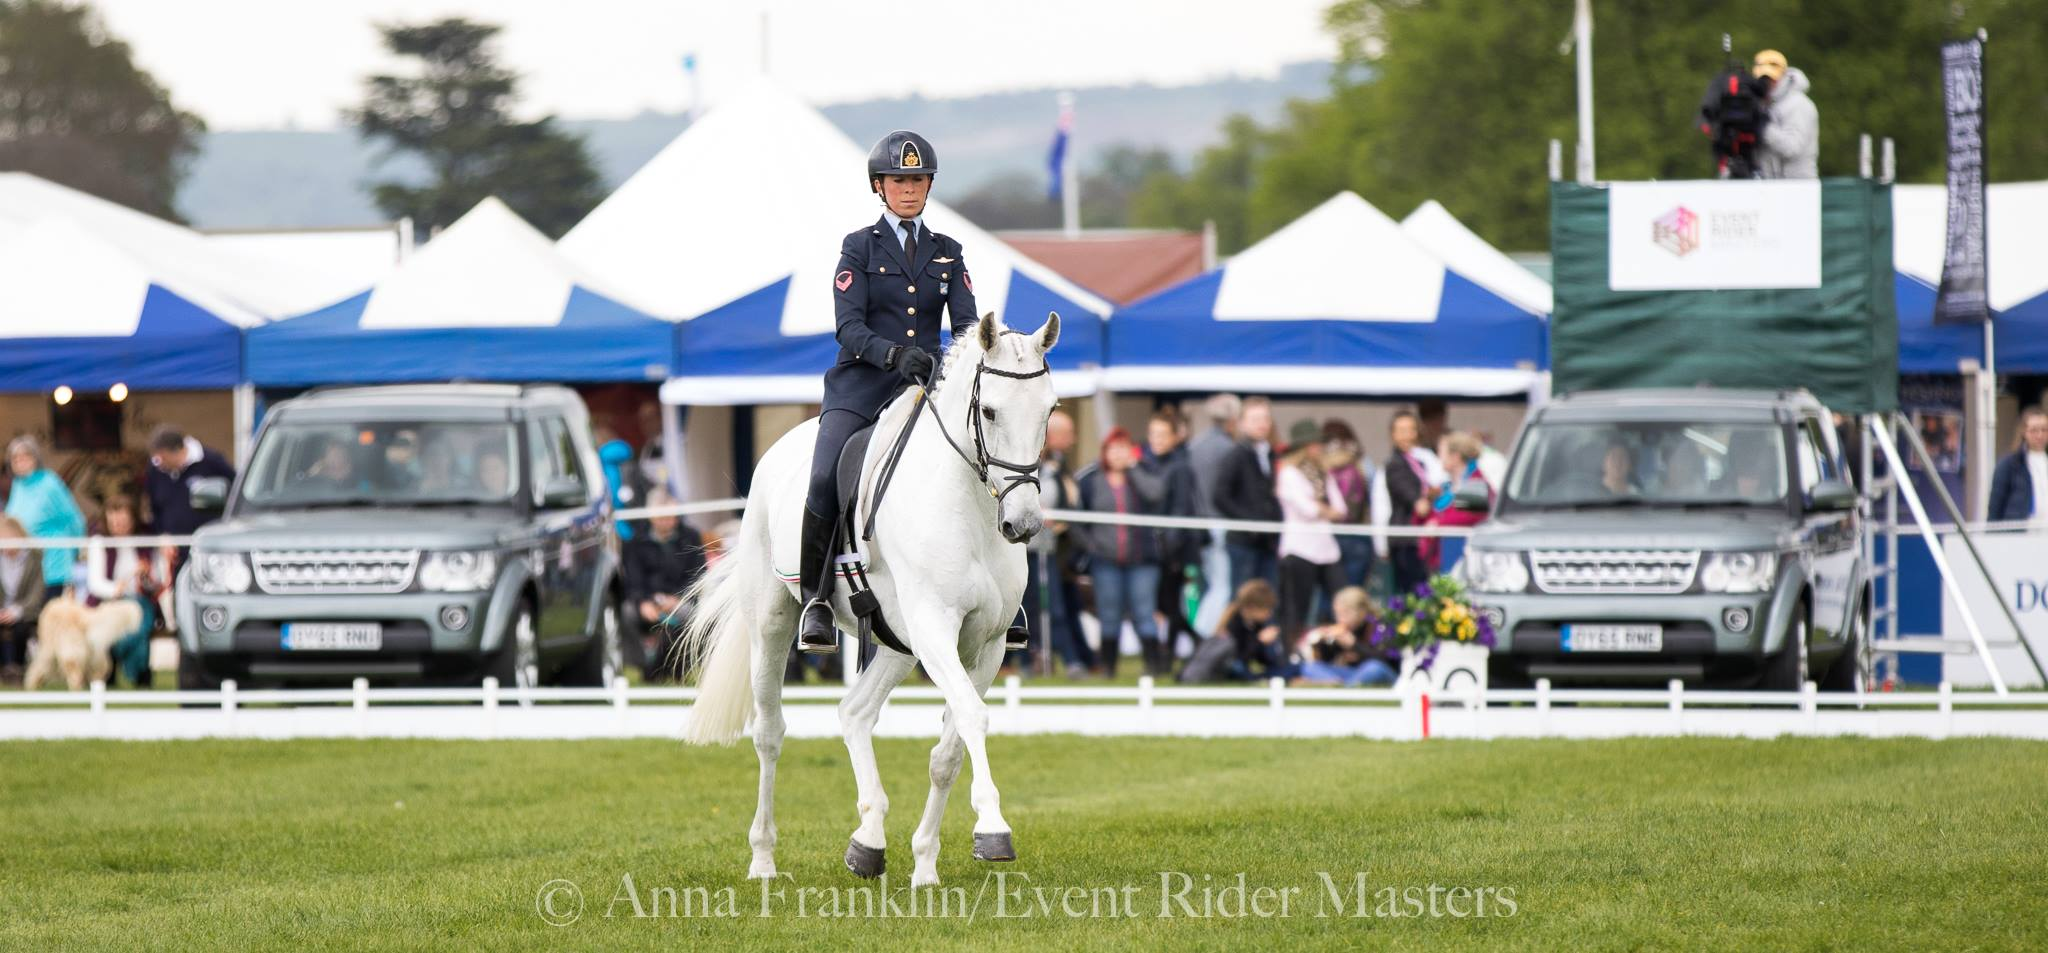 Event Rider Masters a Chatsworth, it's Pennyz time!